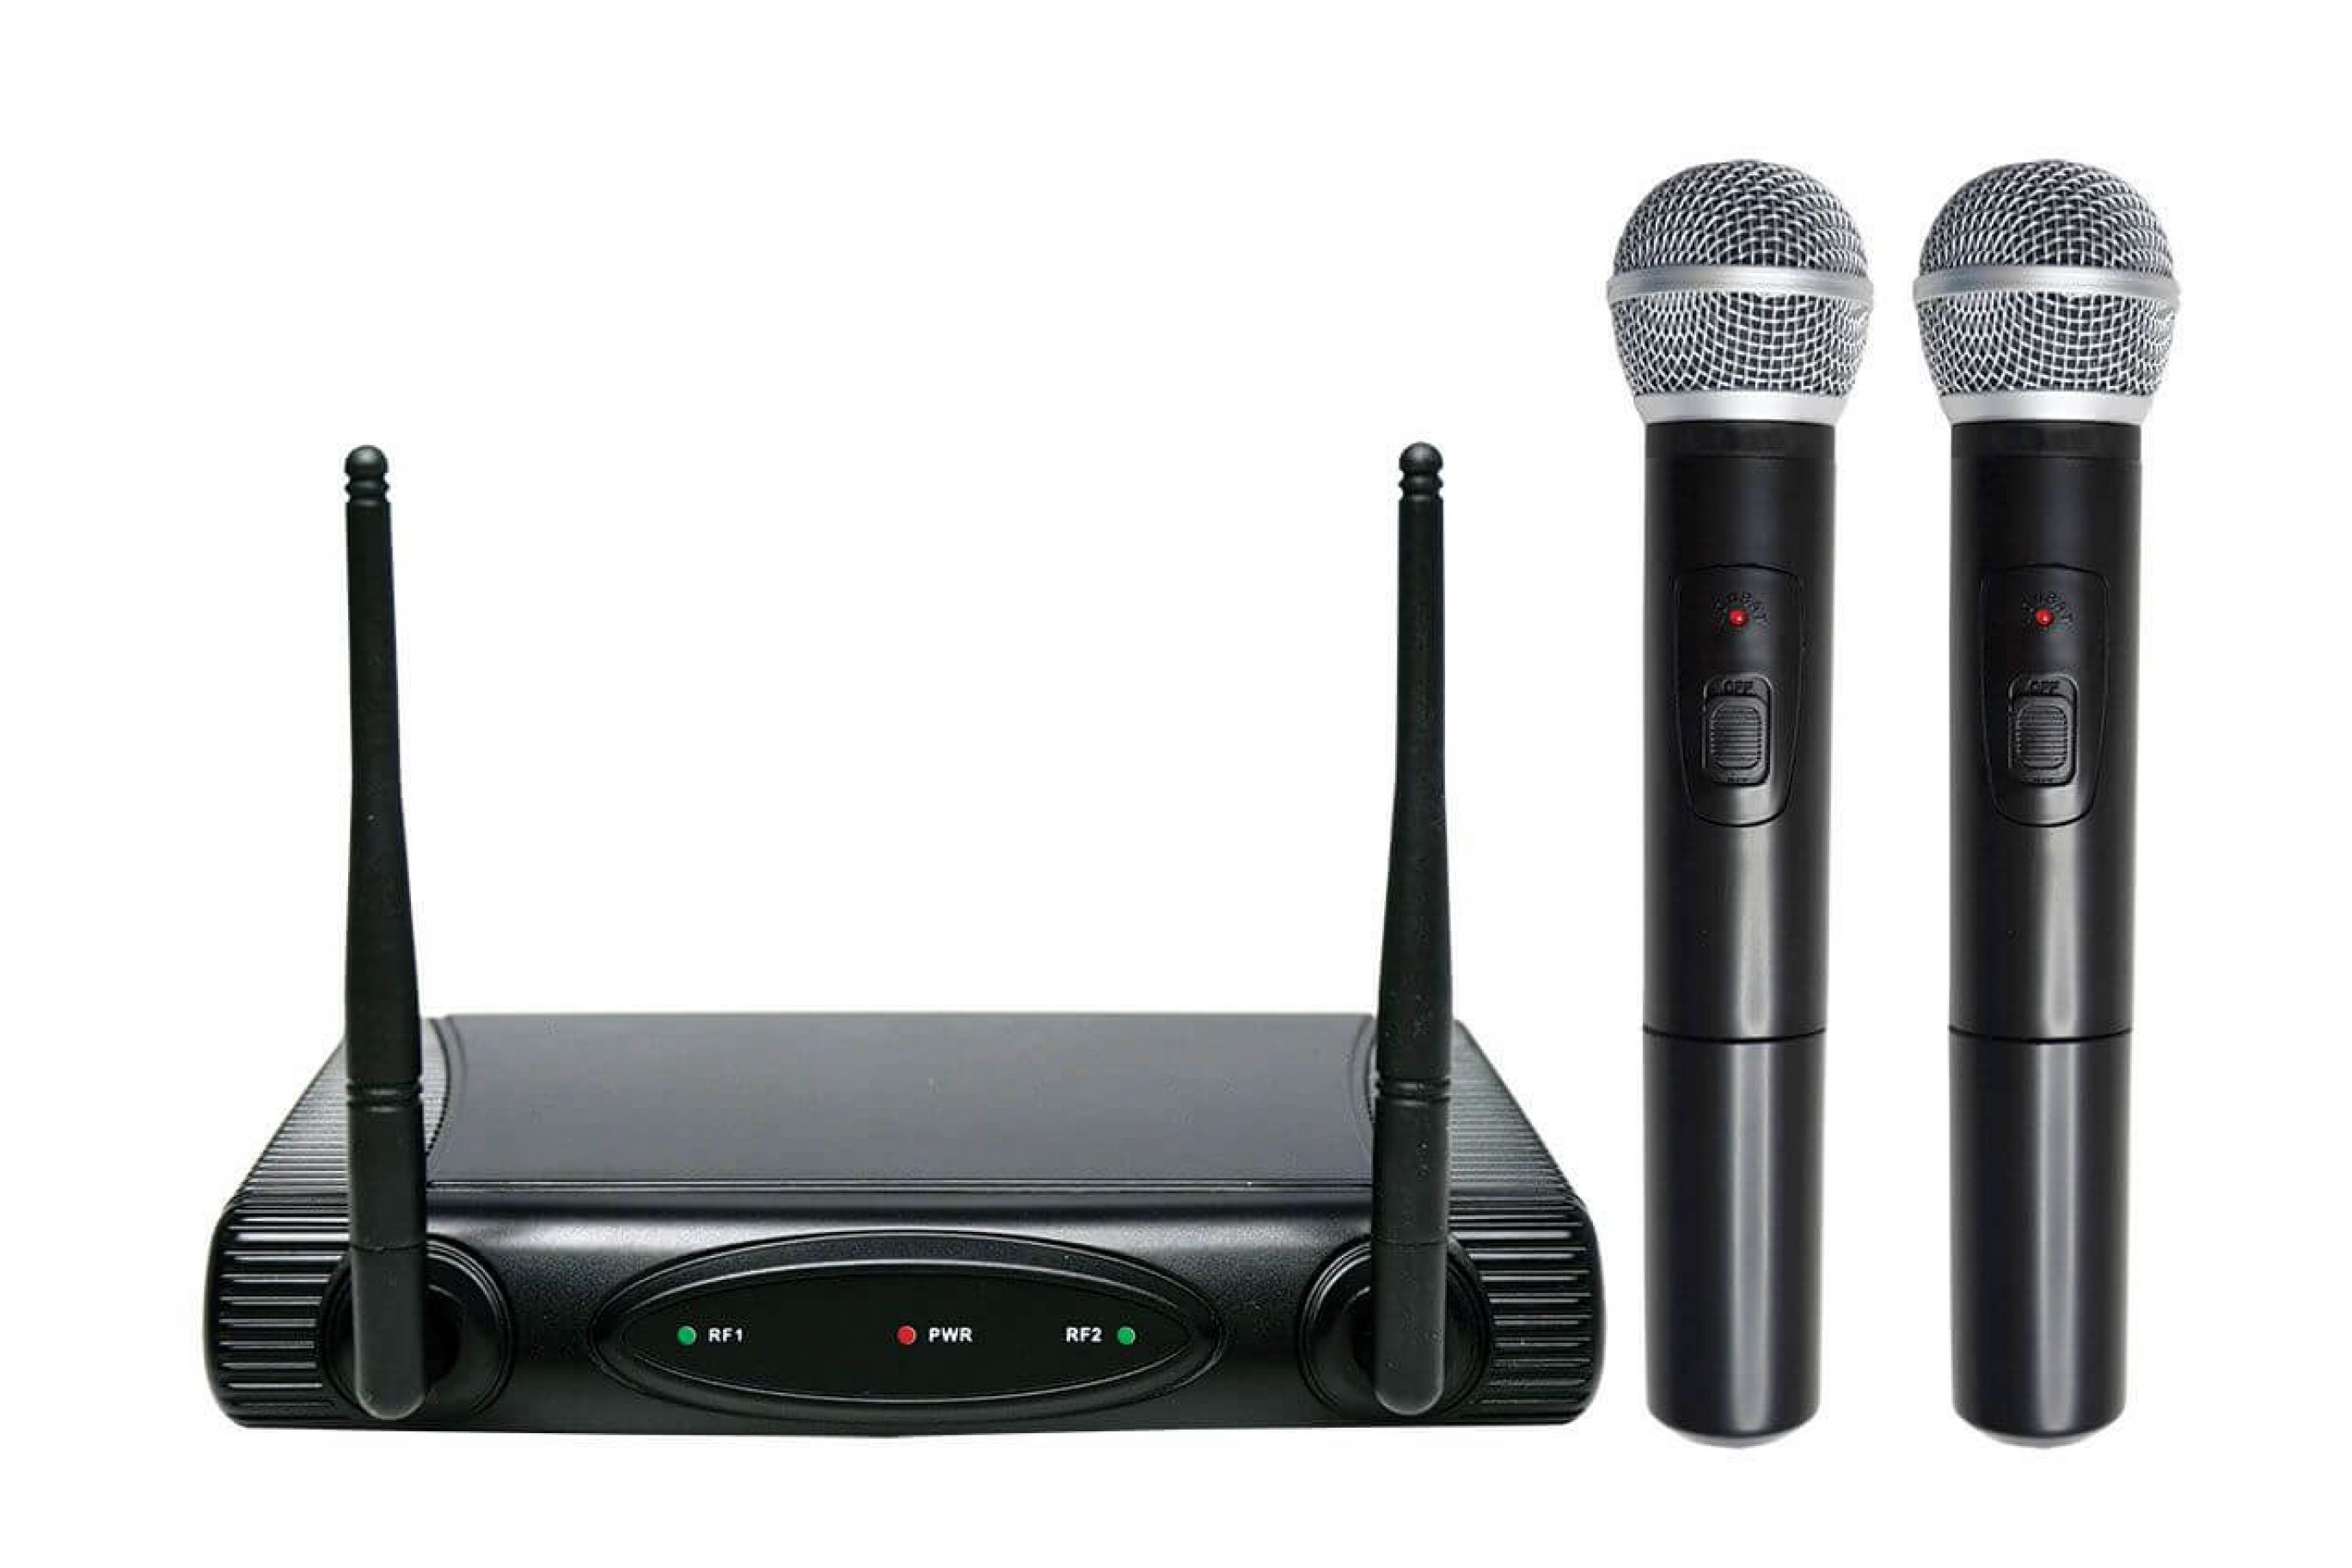 Guida ai microfoni Wireless